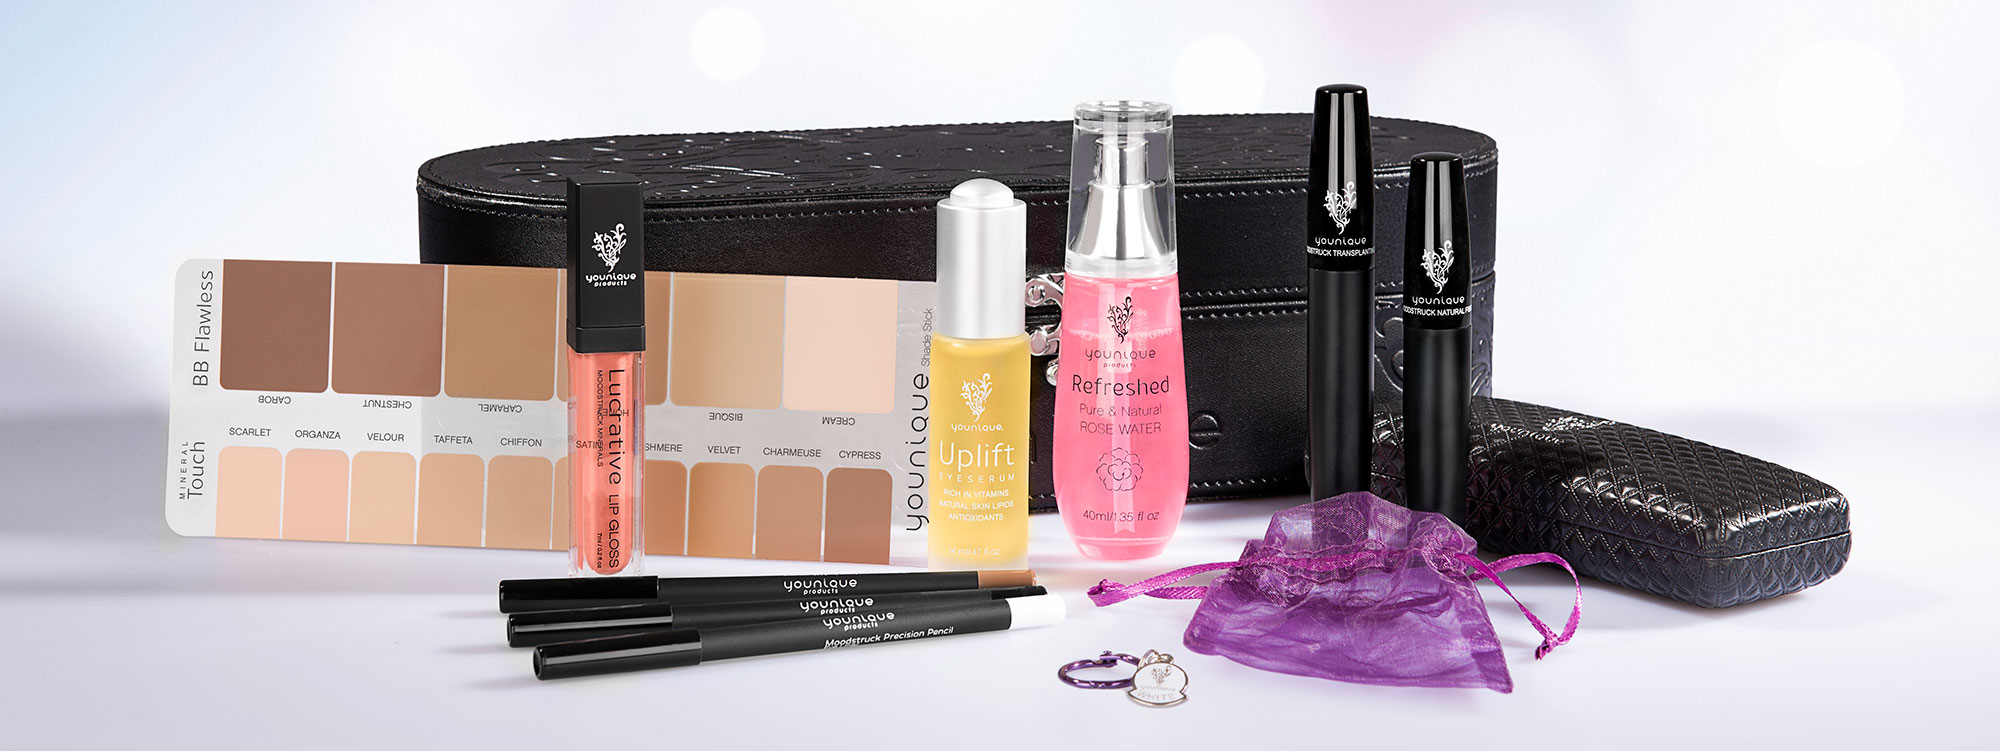 Younique Products 2015